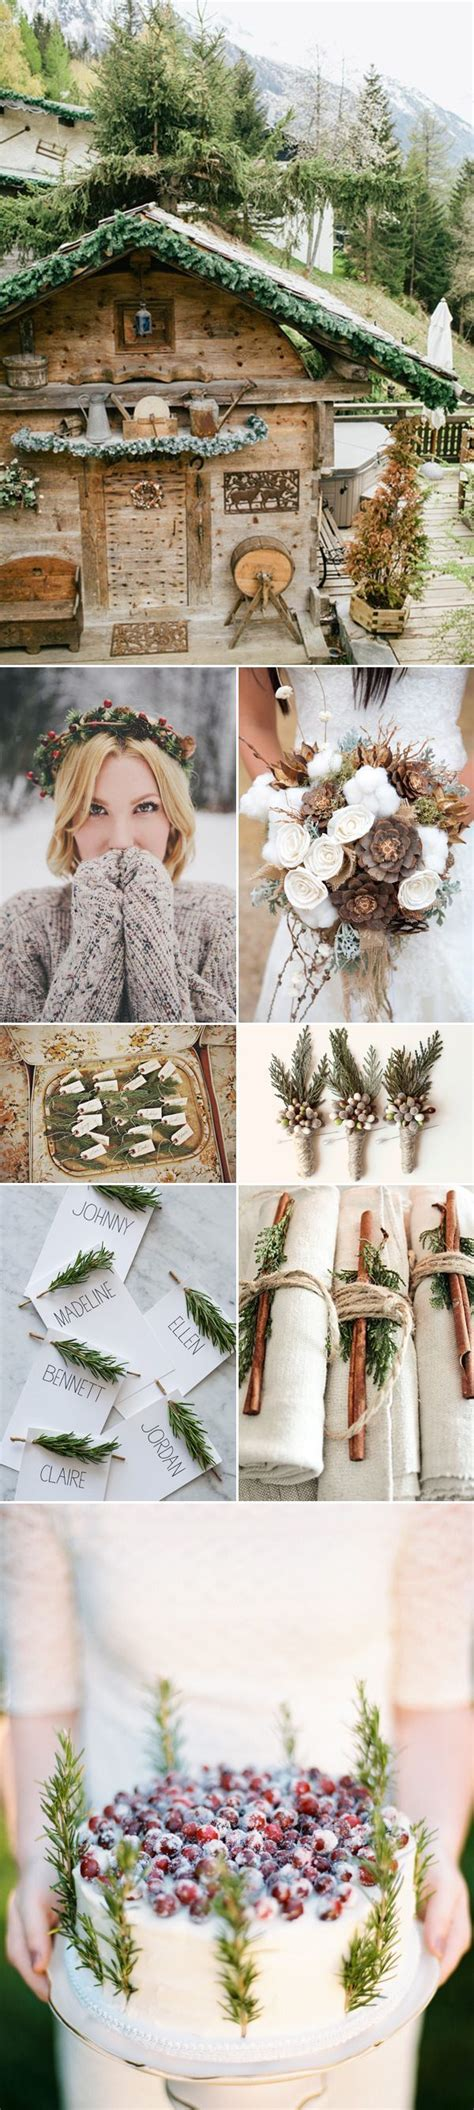 winter weddings 10 new winter wedding ideas real it s fall time to put the finishing touches on your